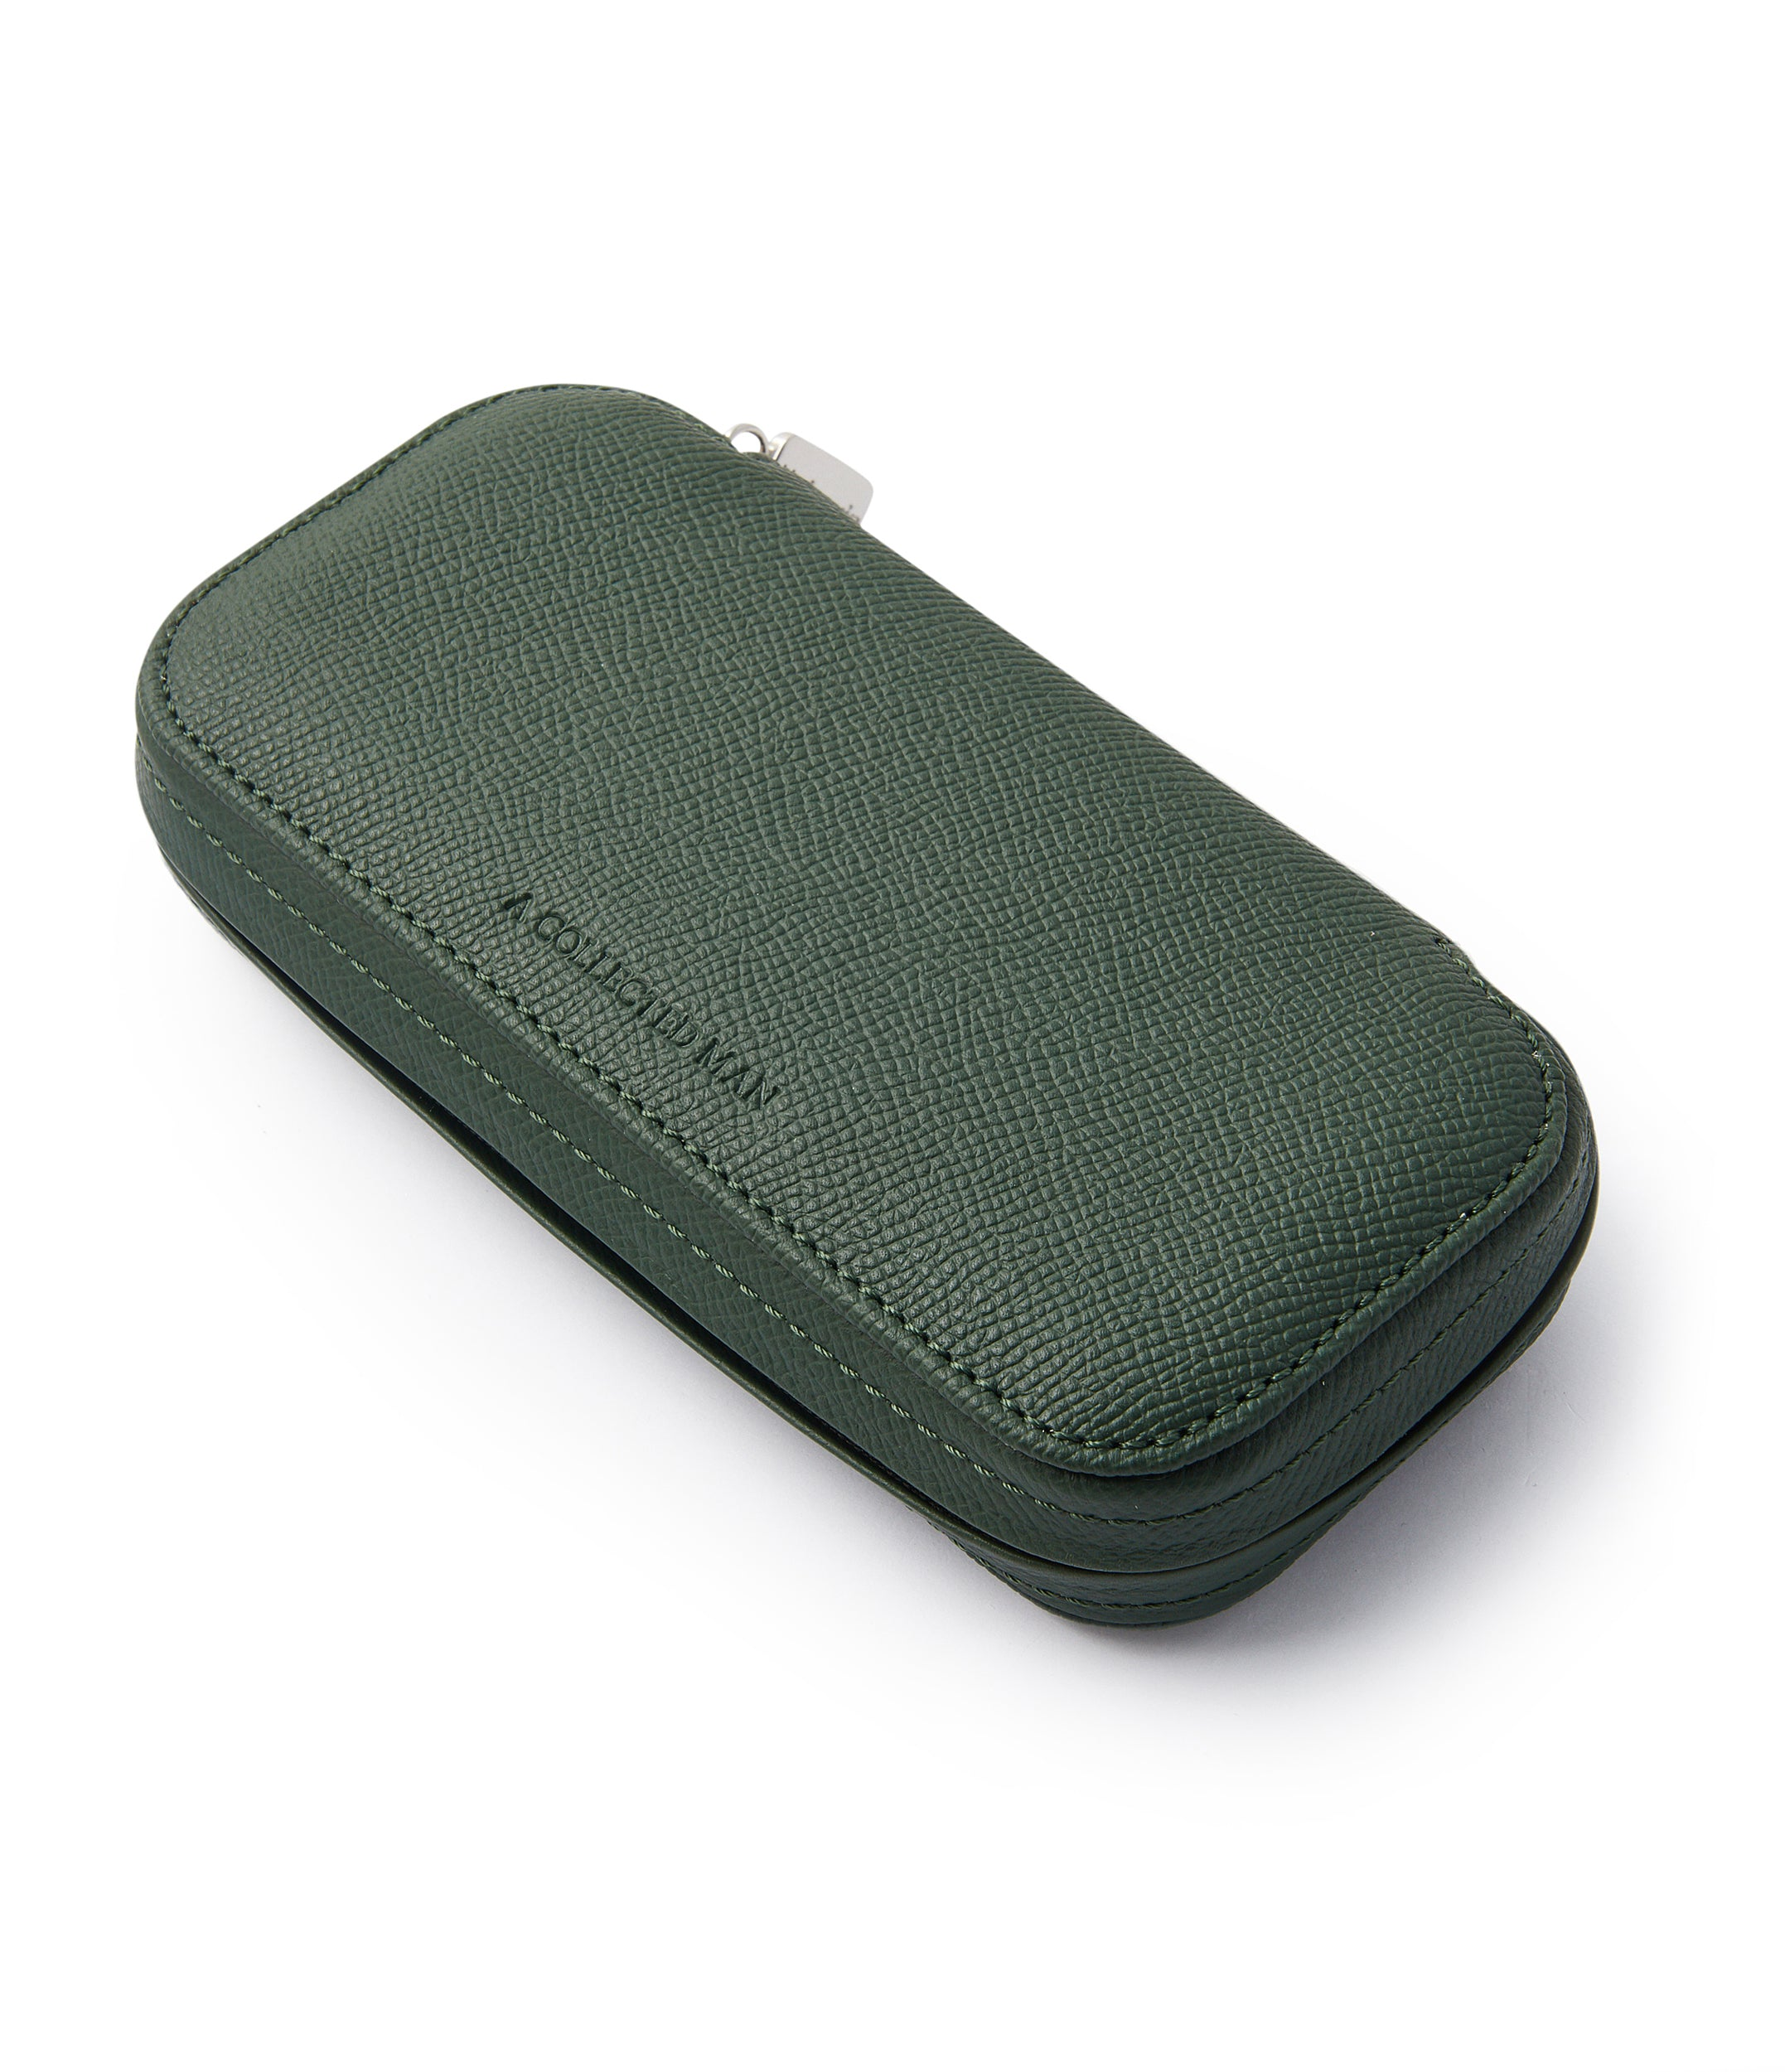 side-shot buy green grained leather luxury two-watch Dublin pouch holder A Collected Man London